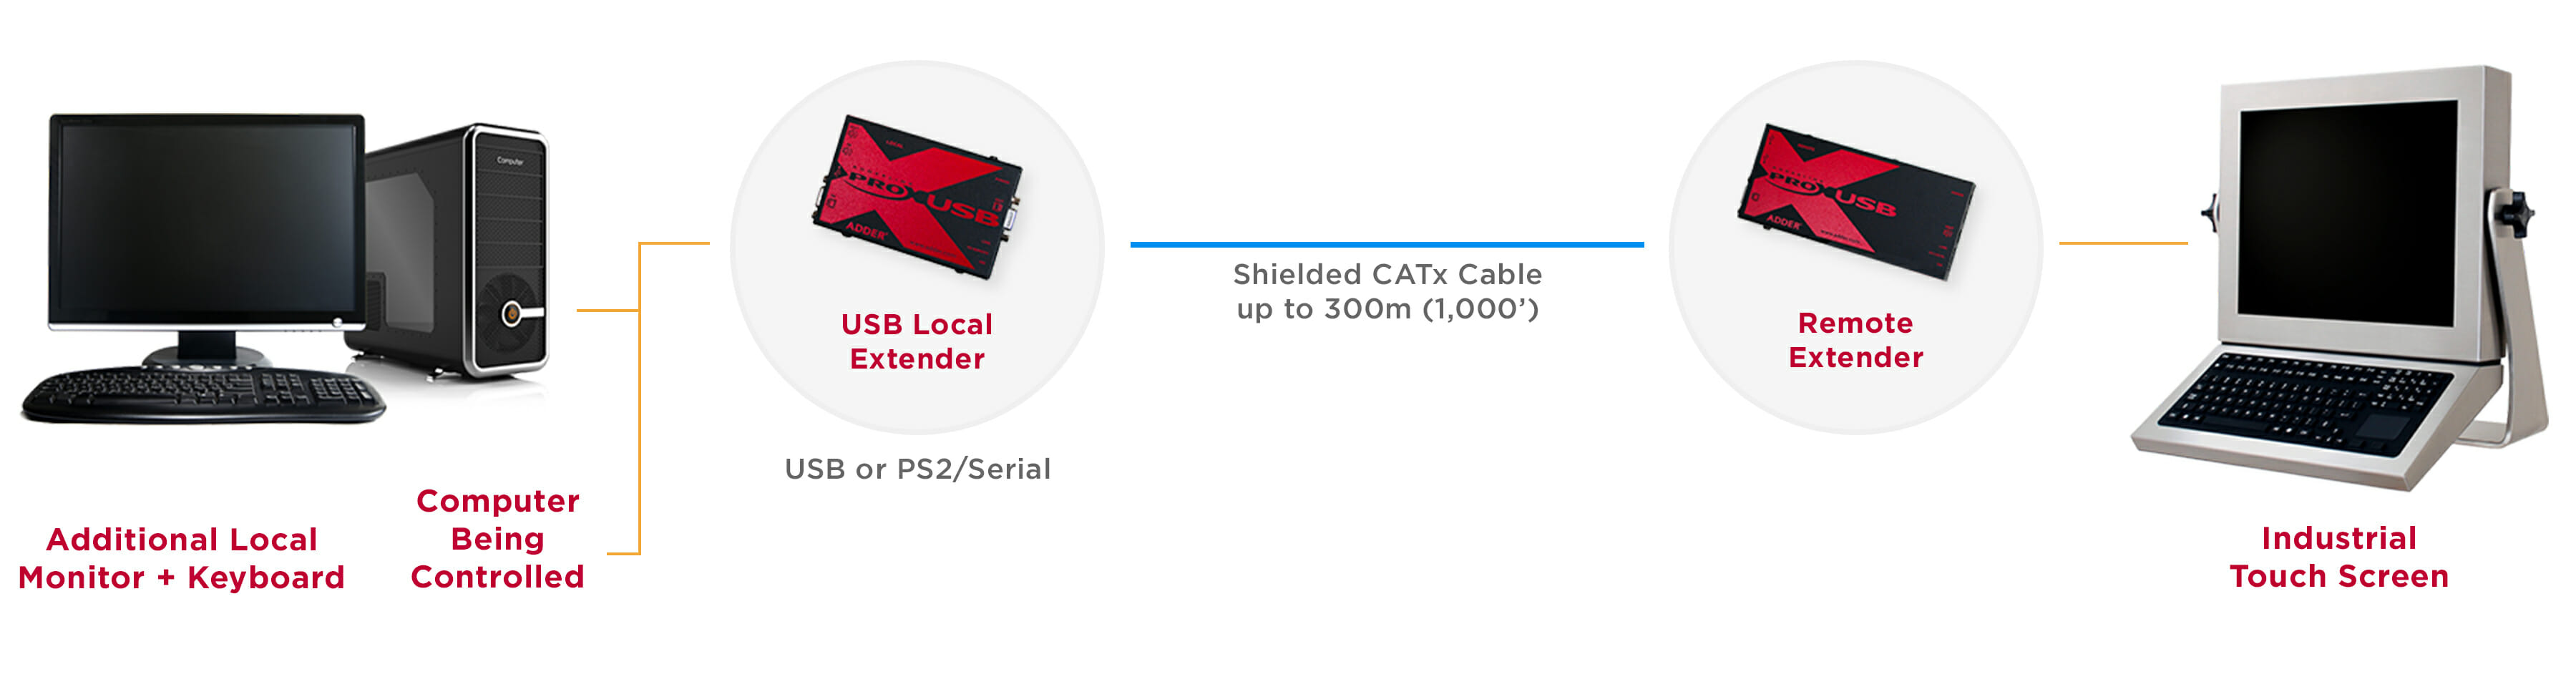 Industrial KVM Extender system diagram for 300 m (1,000') distance over shielded CATx cable